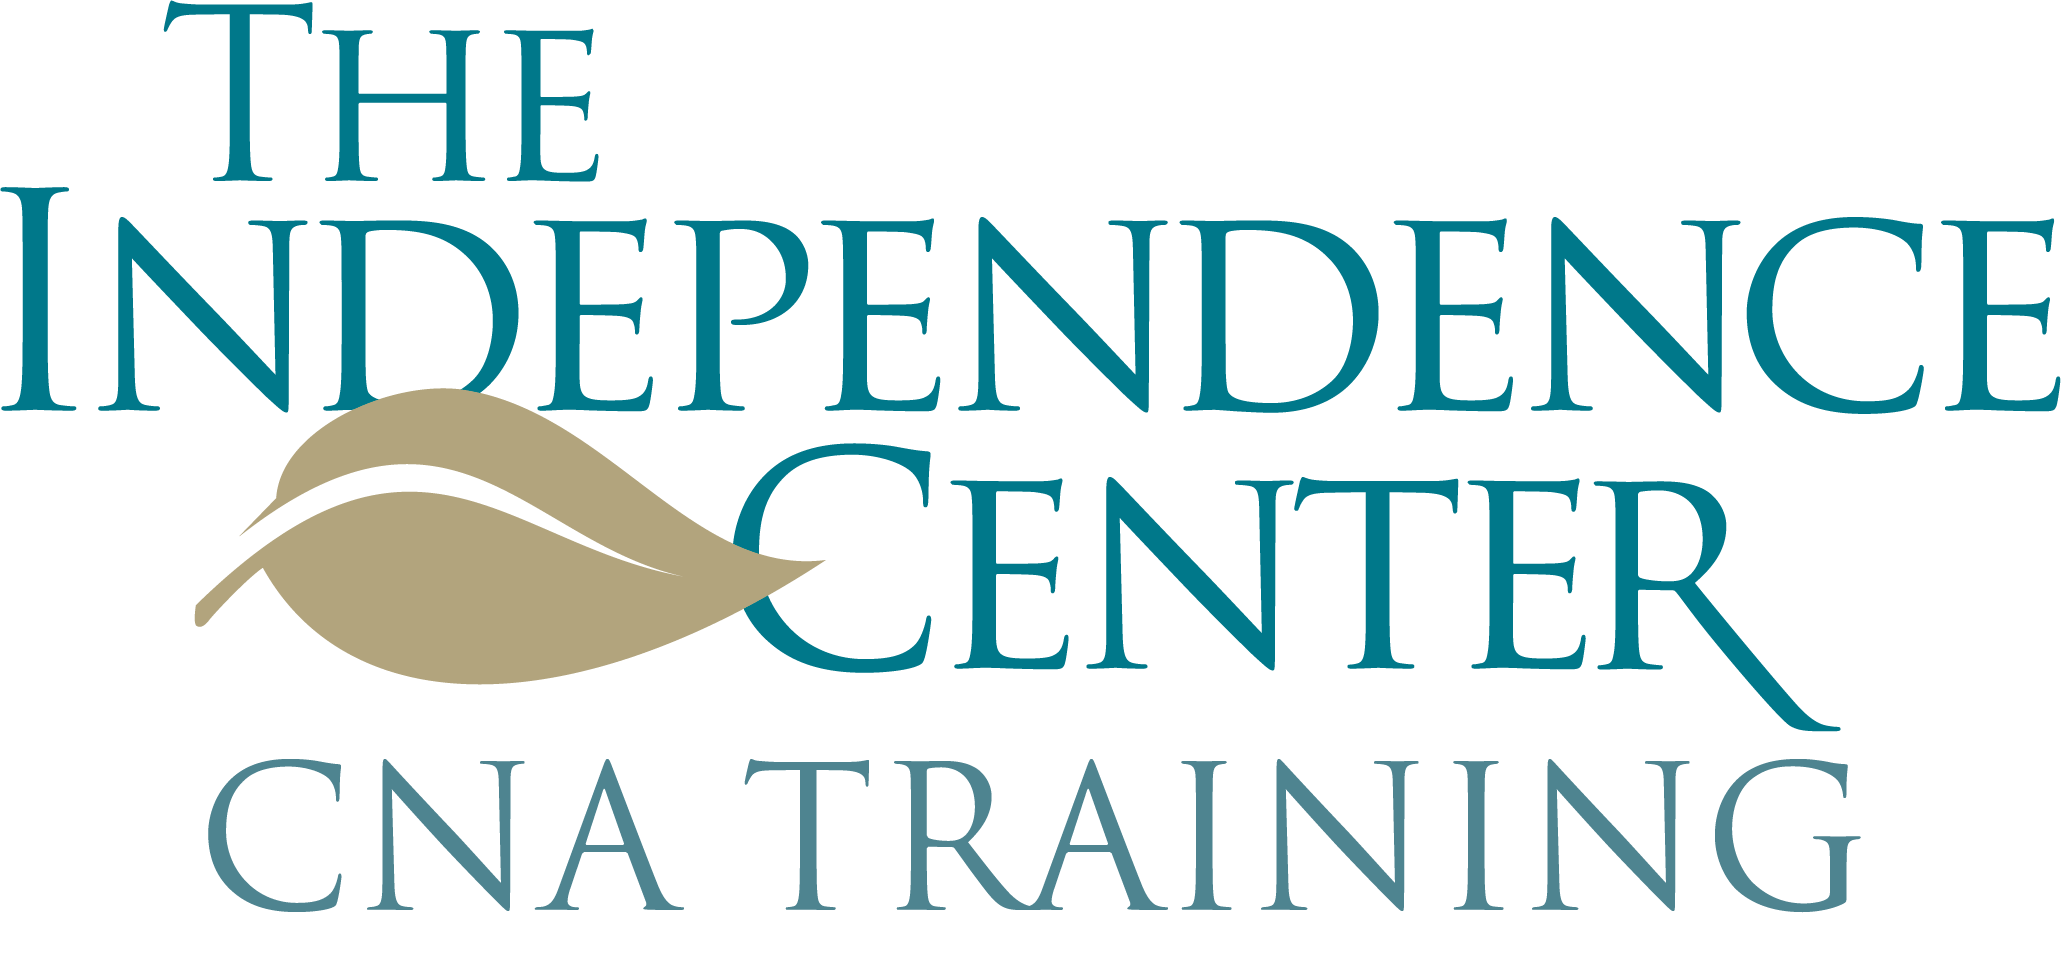 Cna training program independence center cna training program logo xflitez Choice Image